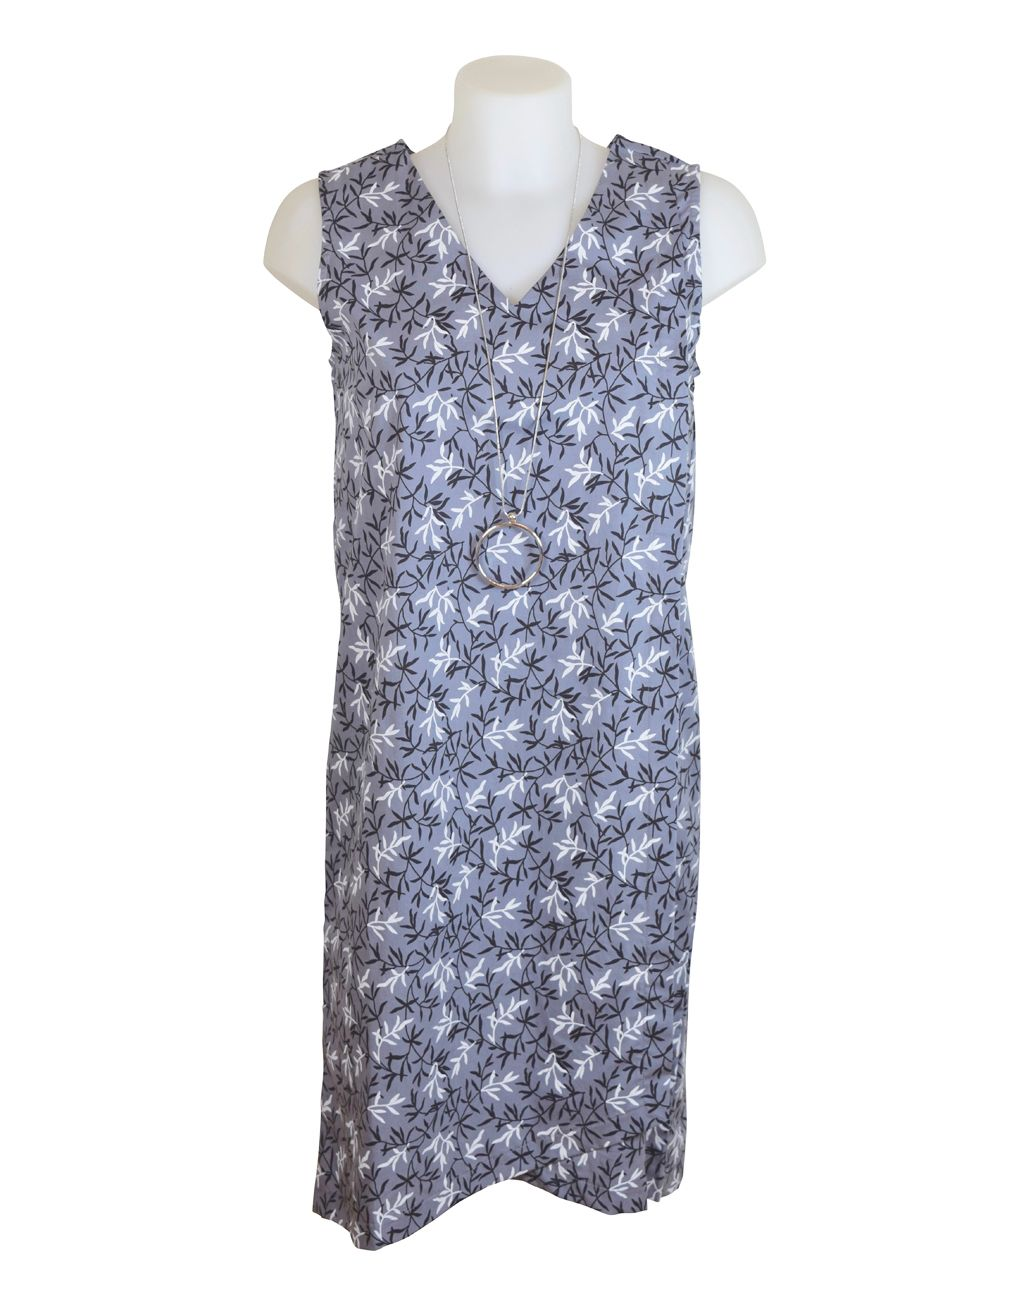 Alice Collins Summer Dress Okaleaf Grey 18 XXL